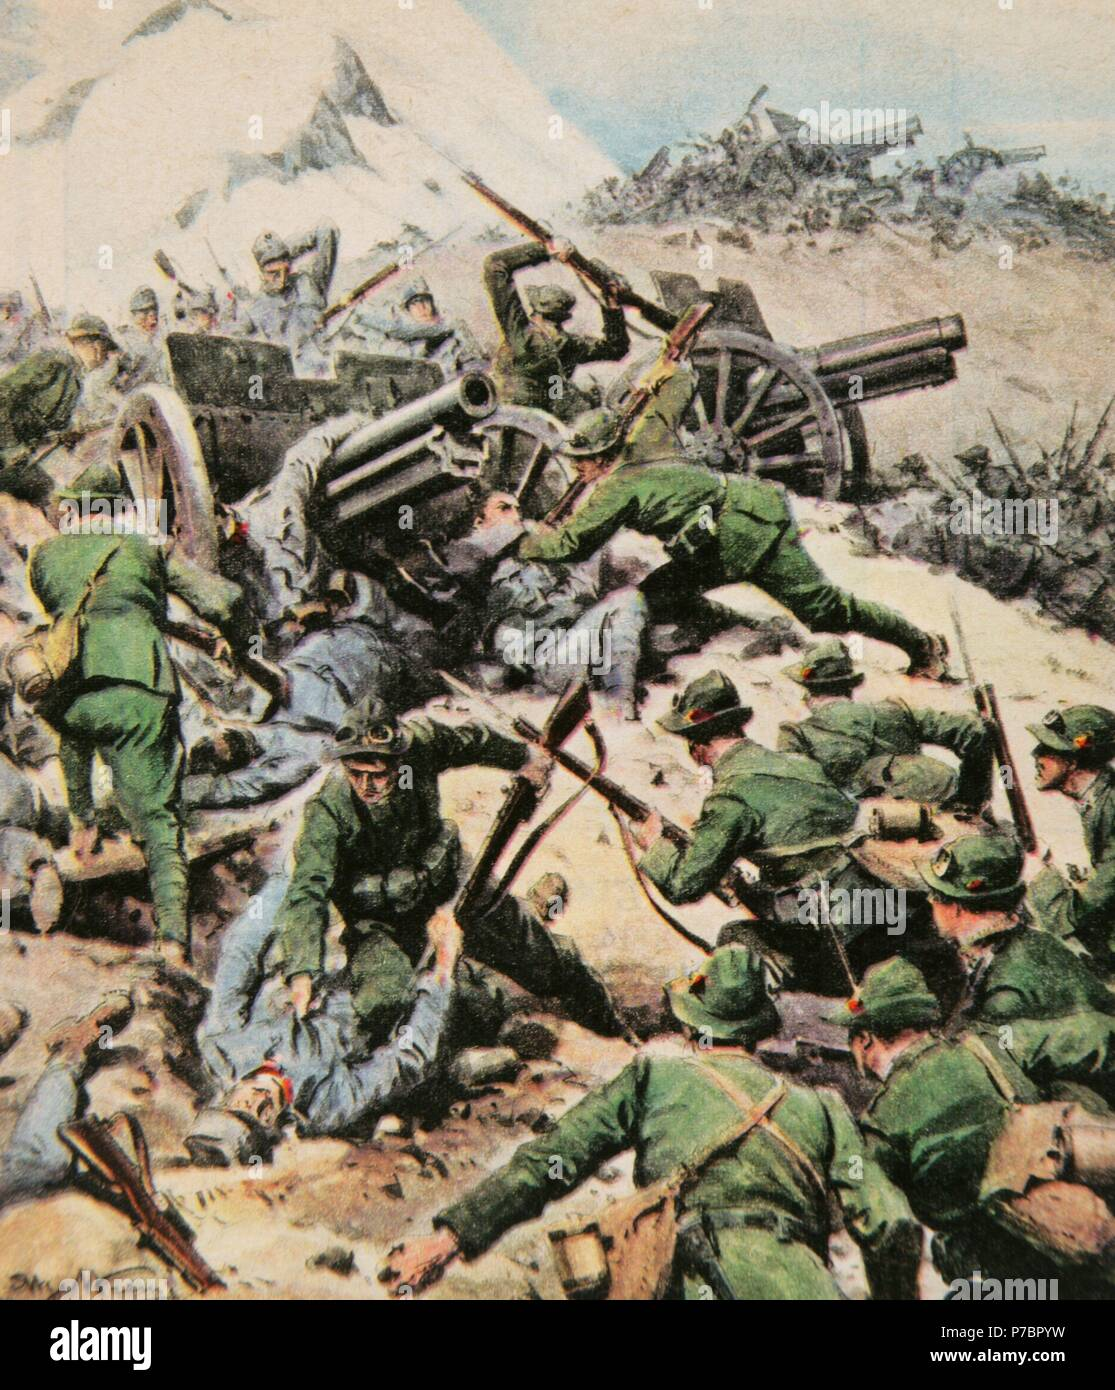 World War I (1914-1918). Italian front. Italian army with bayonet fighting Austro-Hungarian troops.Trentino, North Italy. Drawing by Achille Beltrame (1871-1945). La Domenica del Corriere, 1917. Color. Stock Photo